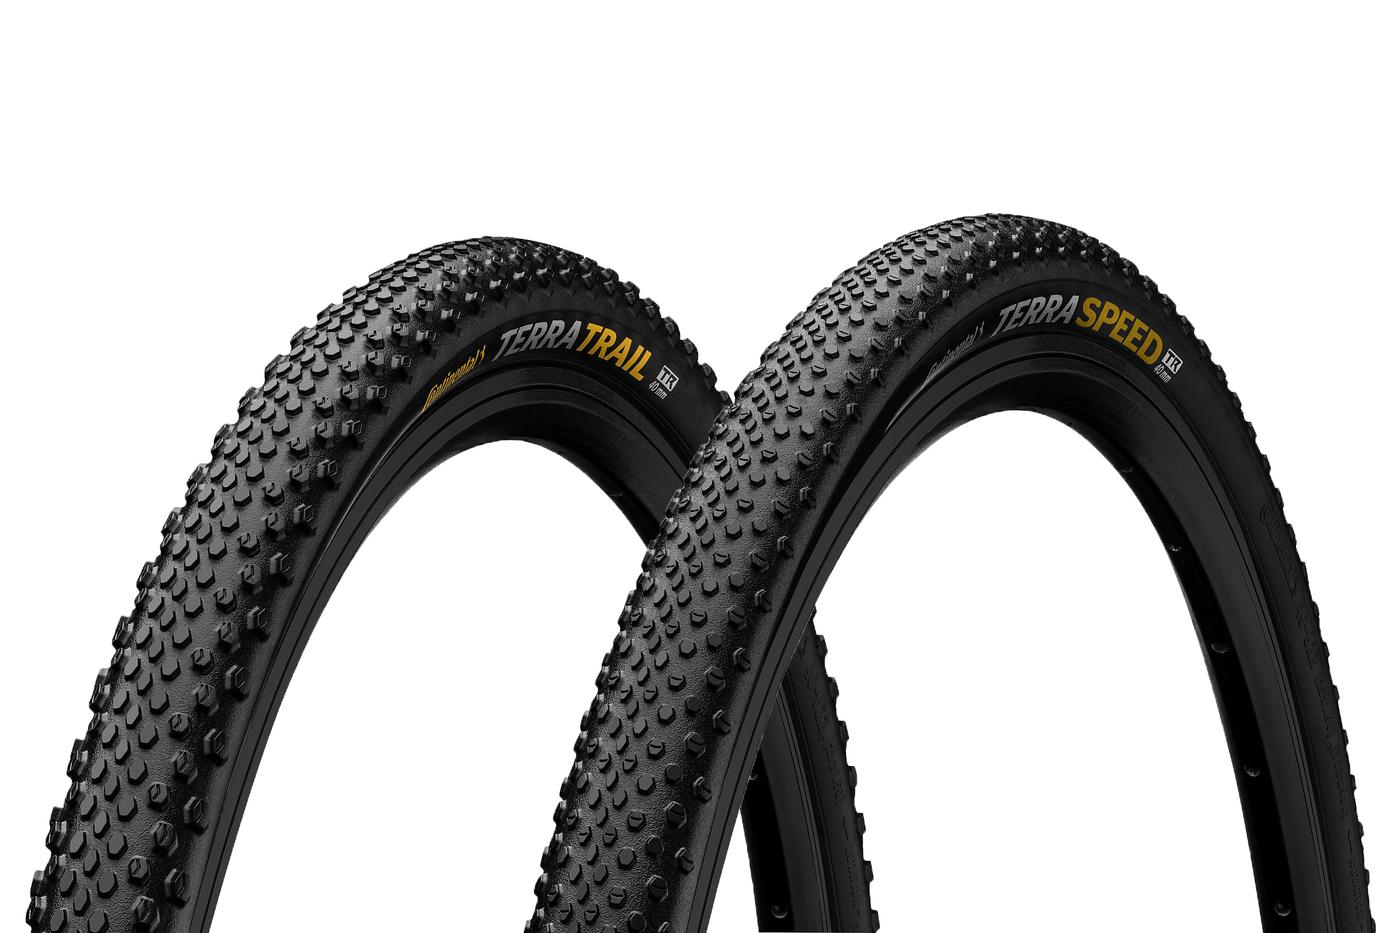 Continental Rolls Out new Gravel Grinding Terra Trail and Terra Speed Tires 15